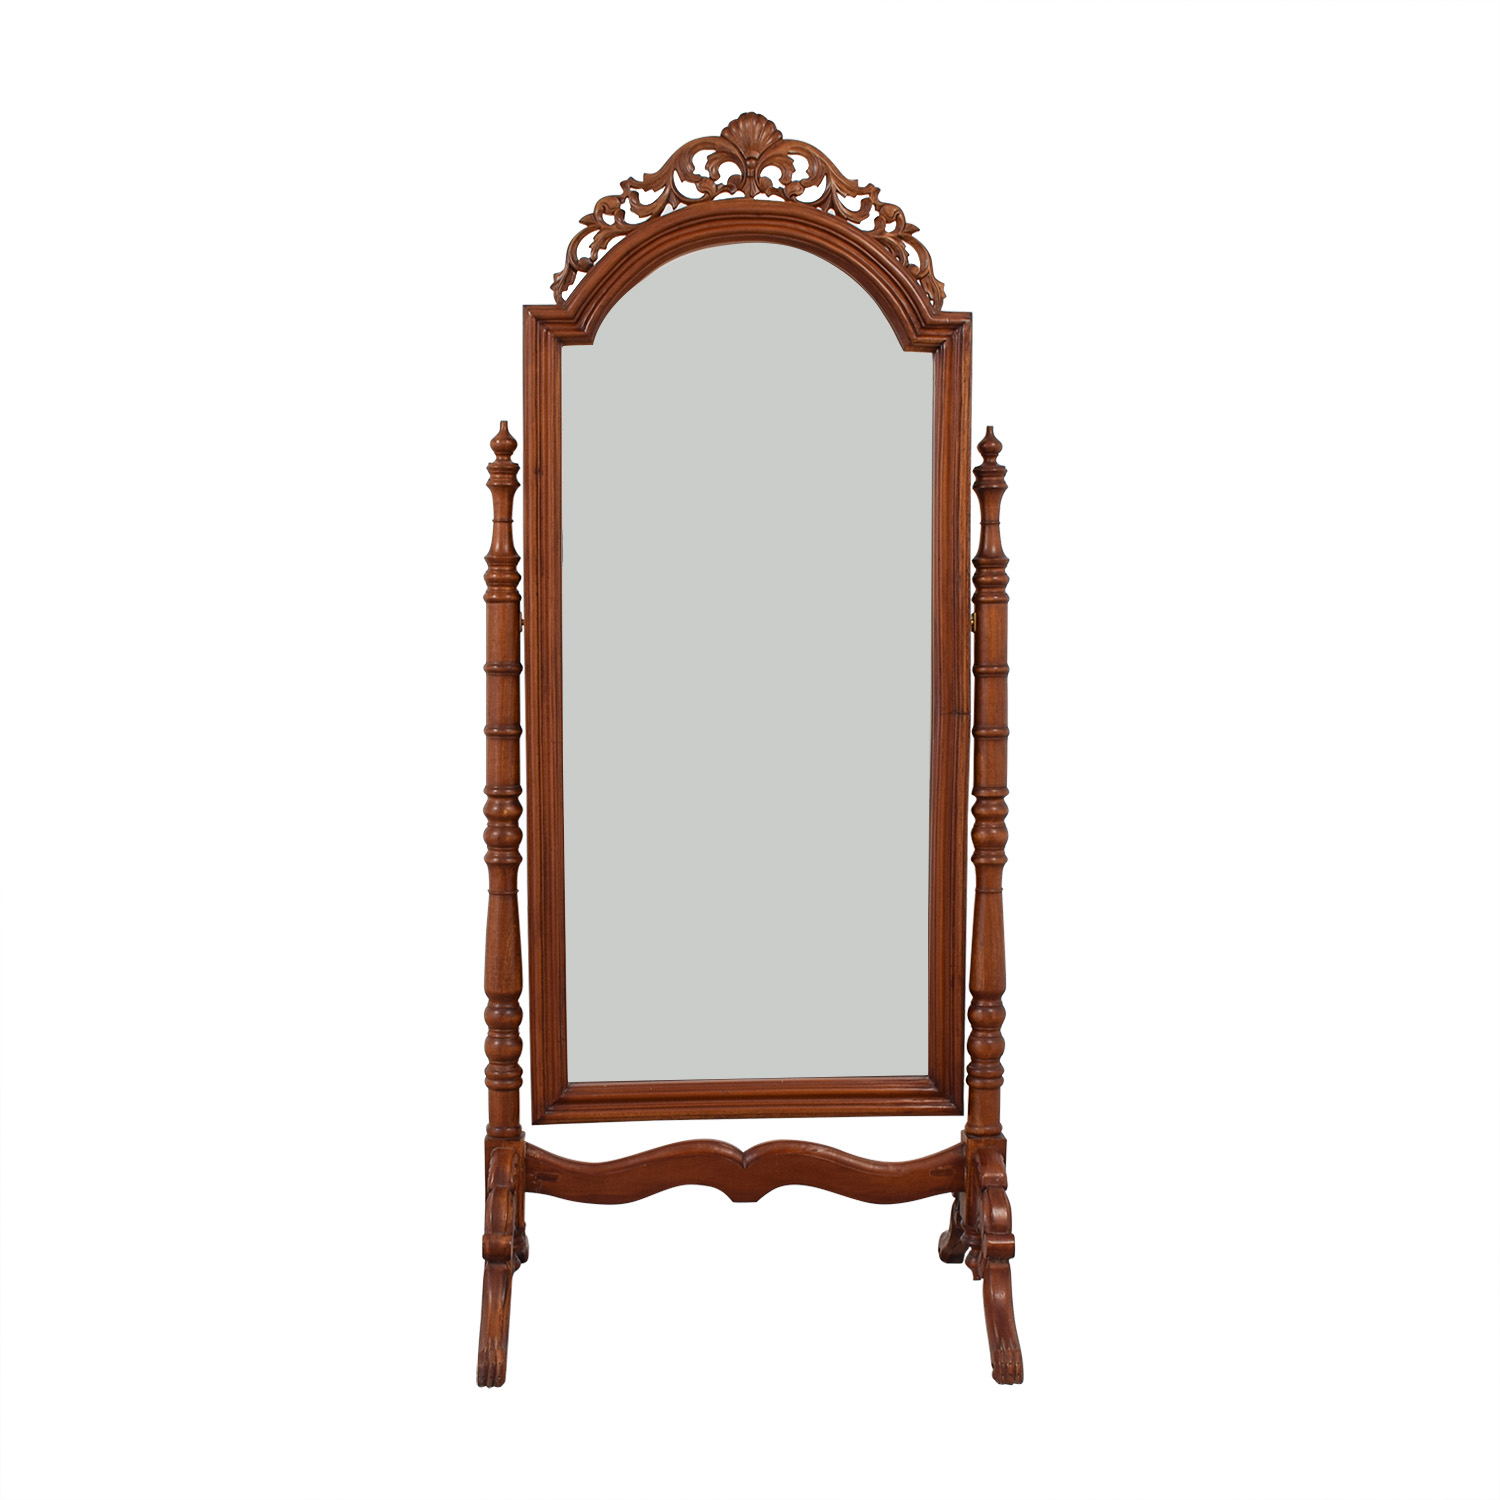 Carved Wooden Standing Mirror on sale